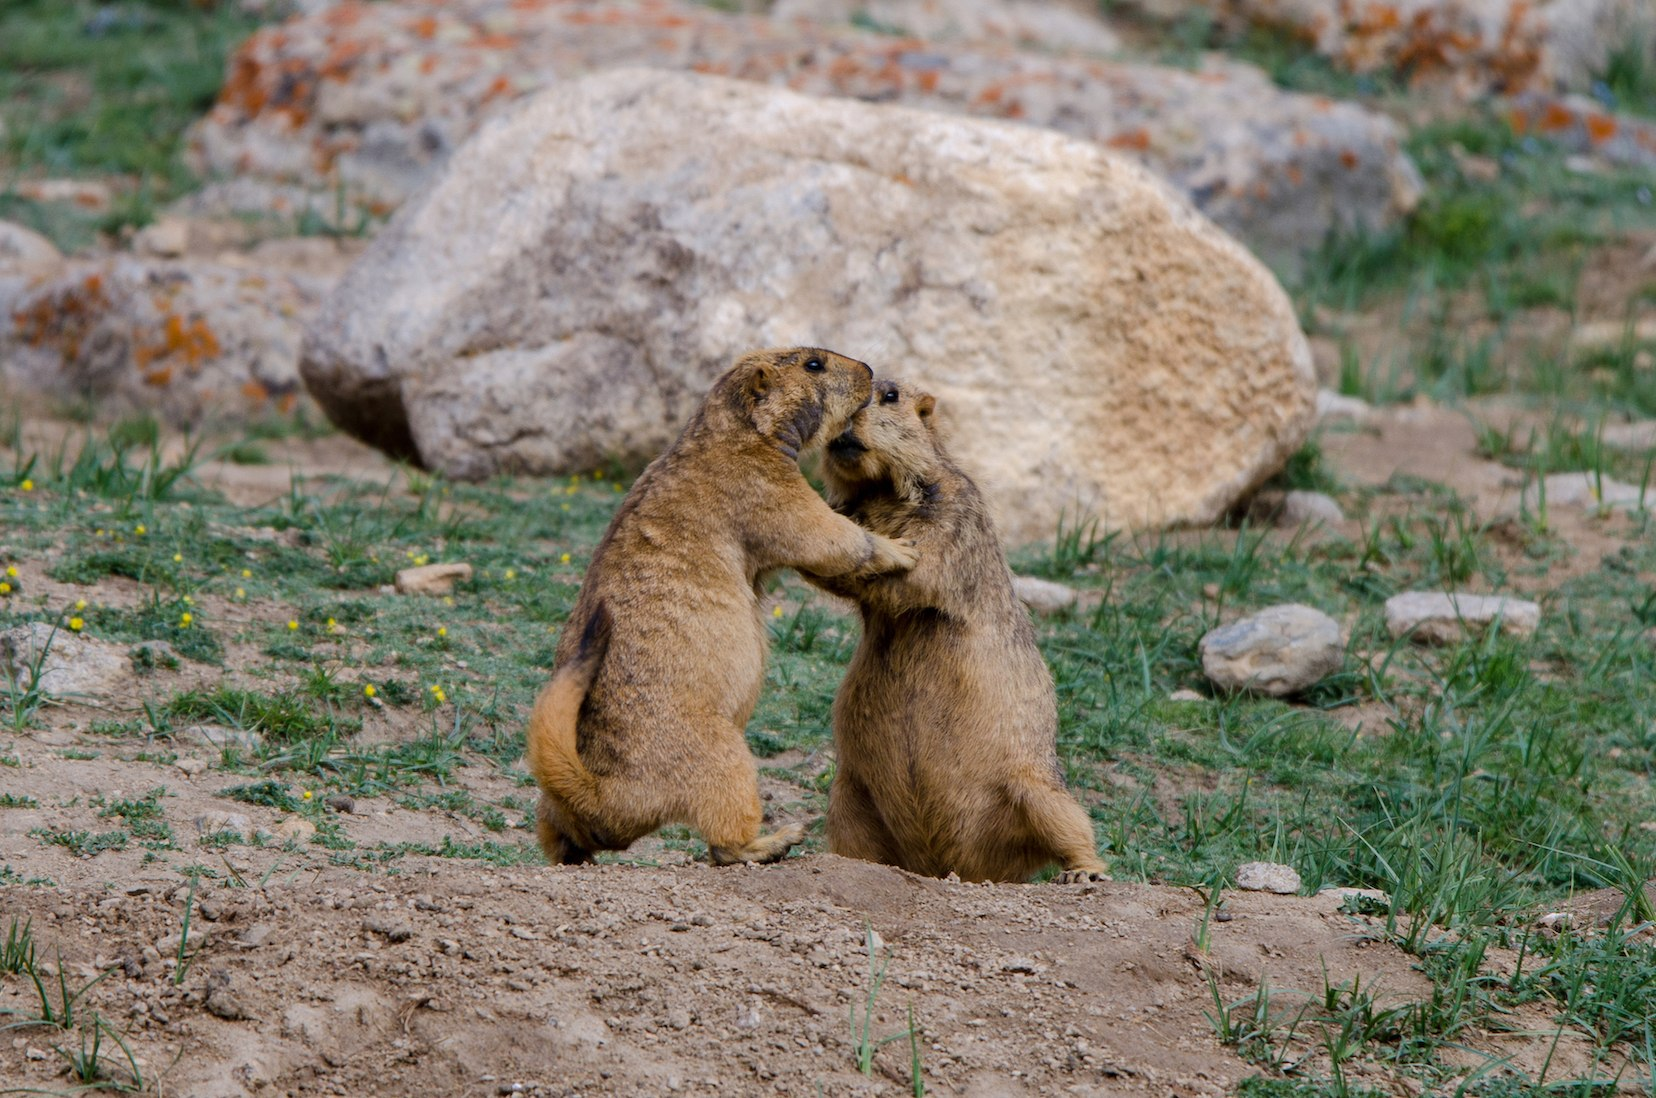 Marmots have an affectionate greeting ritual, which involves rubbing their noses and heads together. Photo: Saurabh Sawant